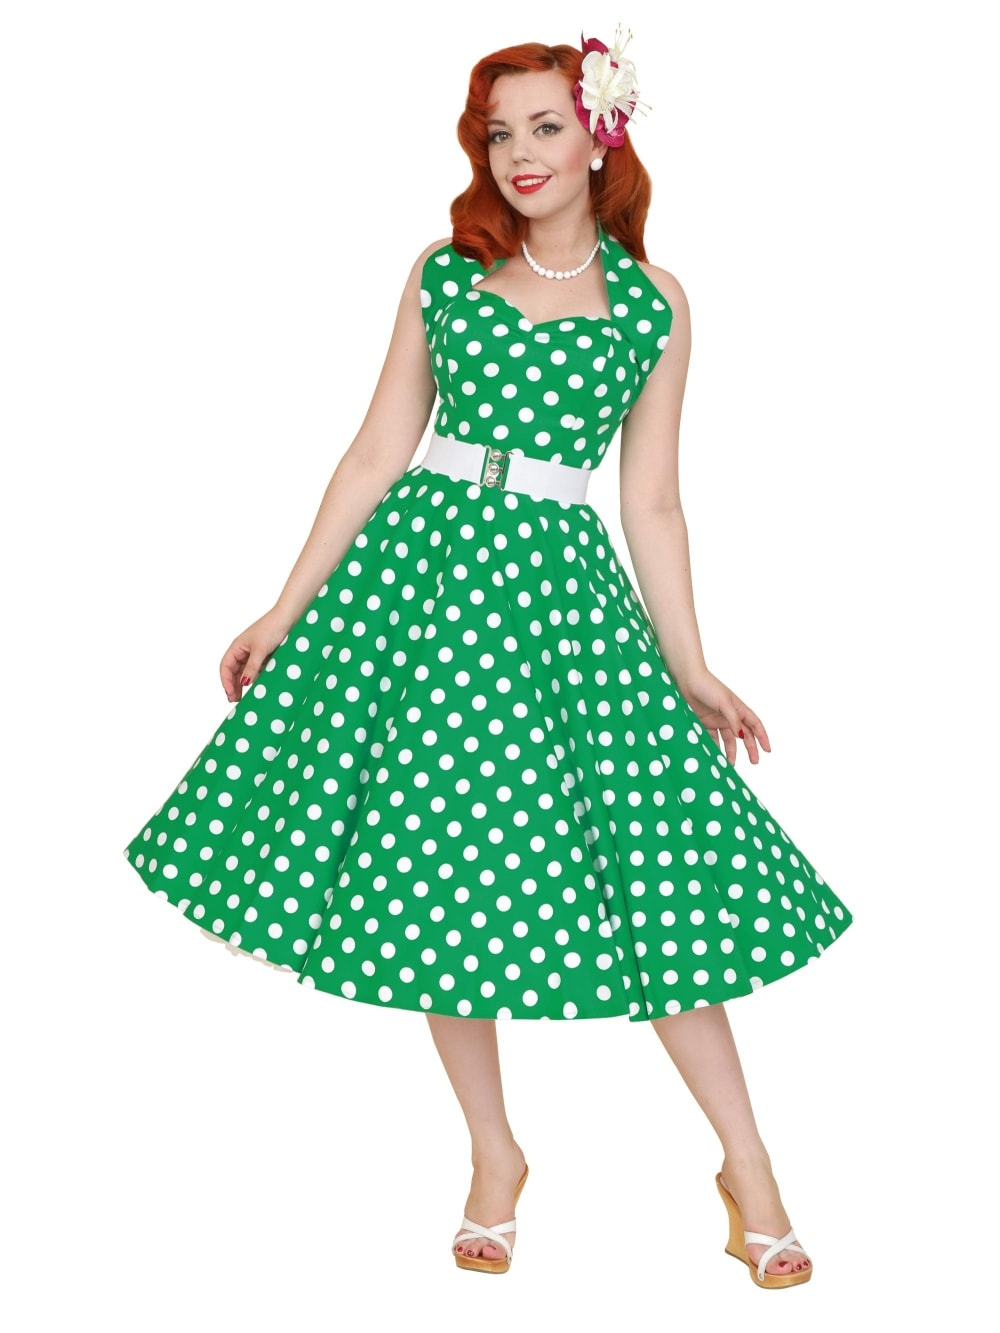 Sweet Storm Mint Green And Black Polka Dot Dress With Sleeves. Very Sweet Dress That Can Pair With Boots And A Cardigan For Colder Weather, Or Ballet Flats For Spring. more More like this.